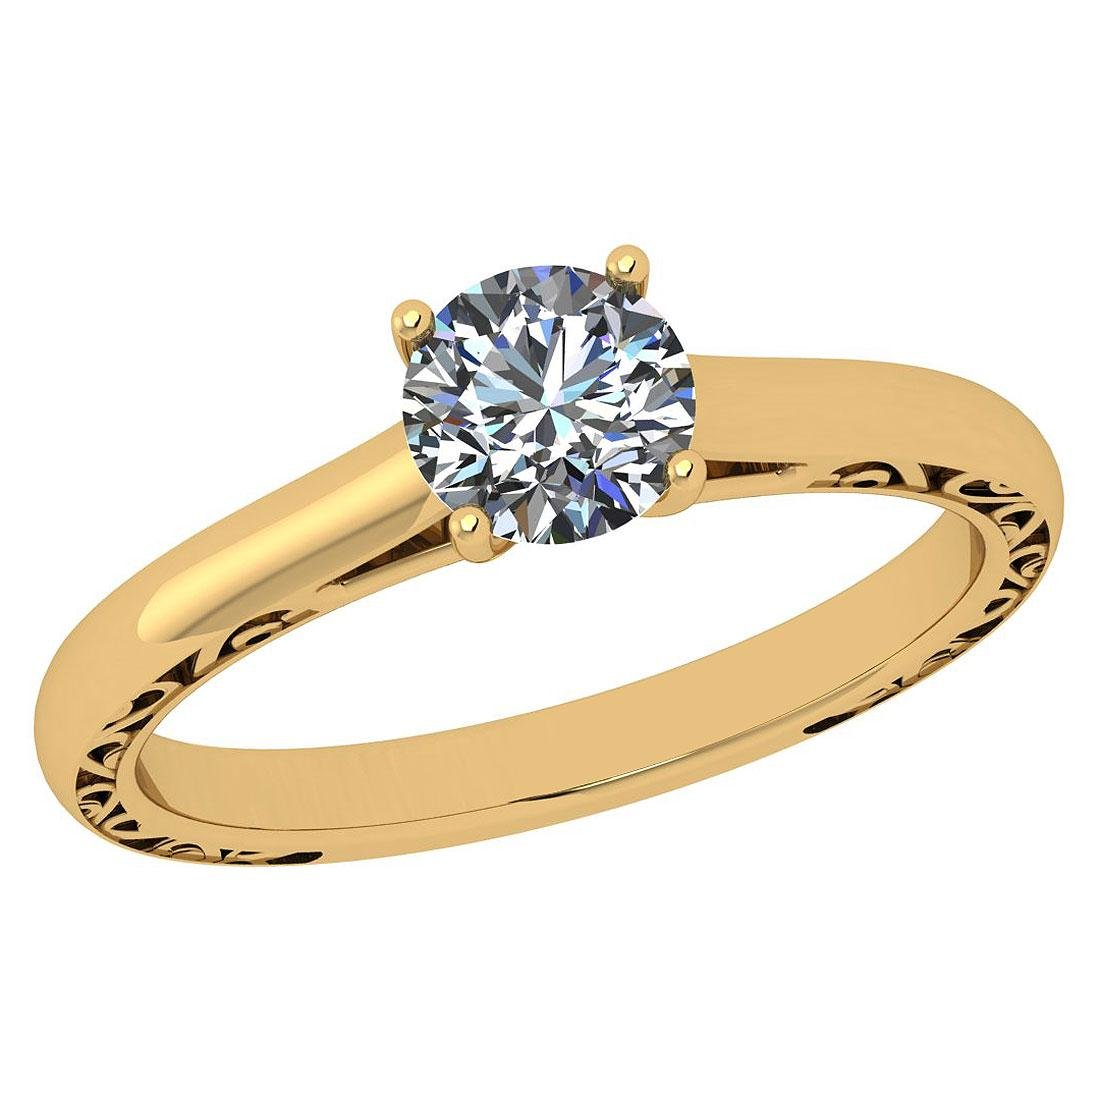 Certified Round 0.83 CTW J/VS2 Diamond Solitaire Ring I